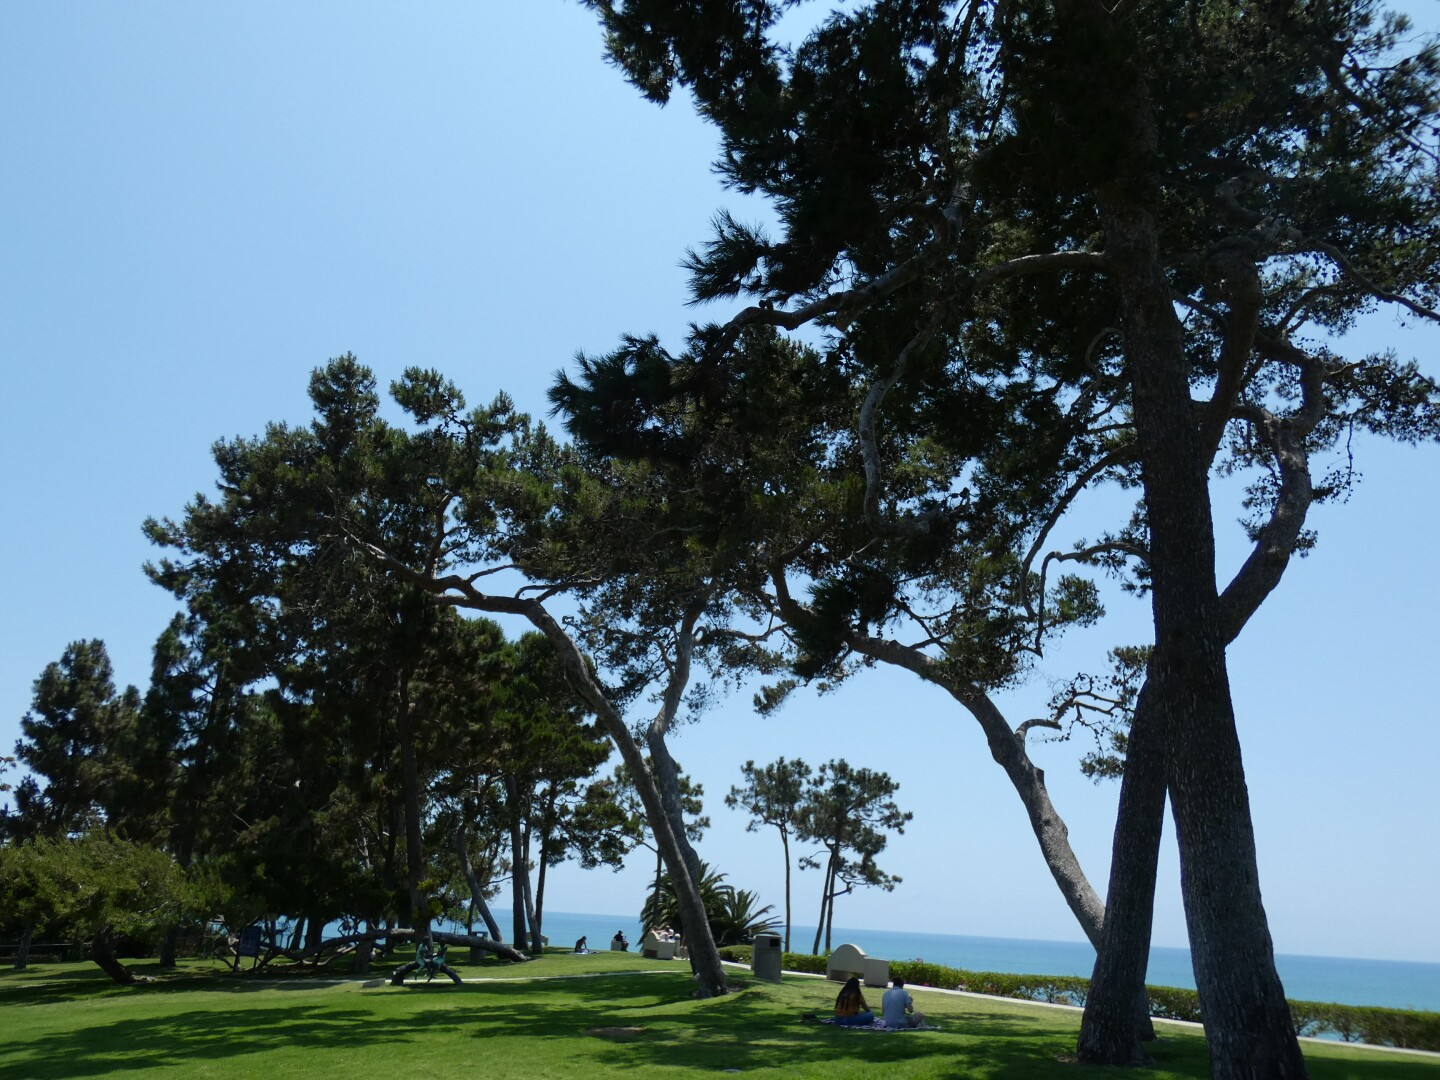 A grove of pine trees provide ample shade at a grassy park. Beyond the park is an overlook of the Pacific Ocean. Visitors rest beneath the shade of the trees.